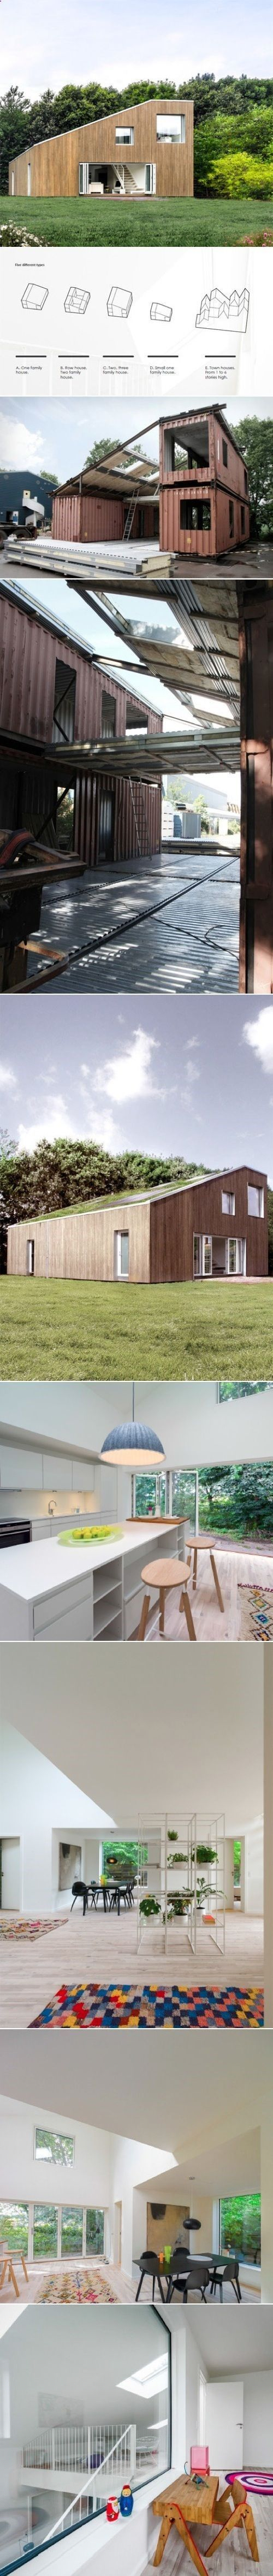 Container House - 3x Shipping Container Home. This two-story recycled shipping container building only needs three equal modular containers to create the basic platform for a modern house: a steel structure unites the three split parts – two on the ground floor and the other above one of them – completing the rest of the surfaces with prefab steel panels. - Who Else Wants Simple Step-By-Step Plans To Design And Build A Container Home From Scratch?